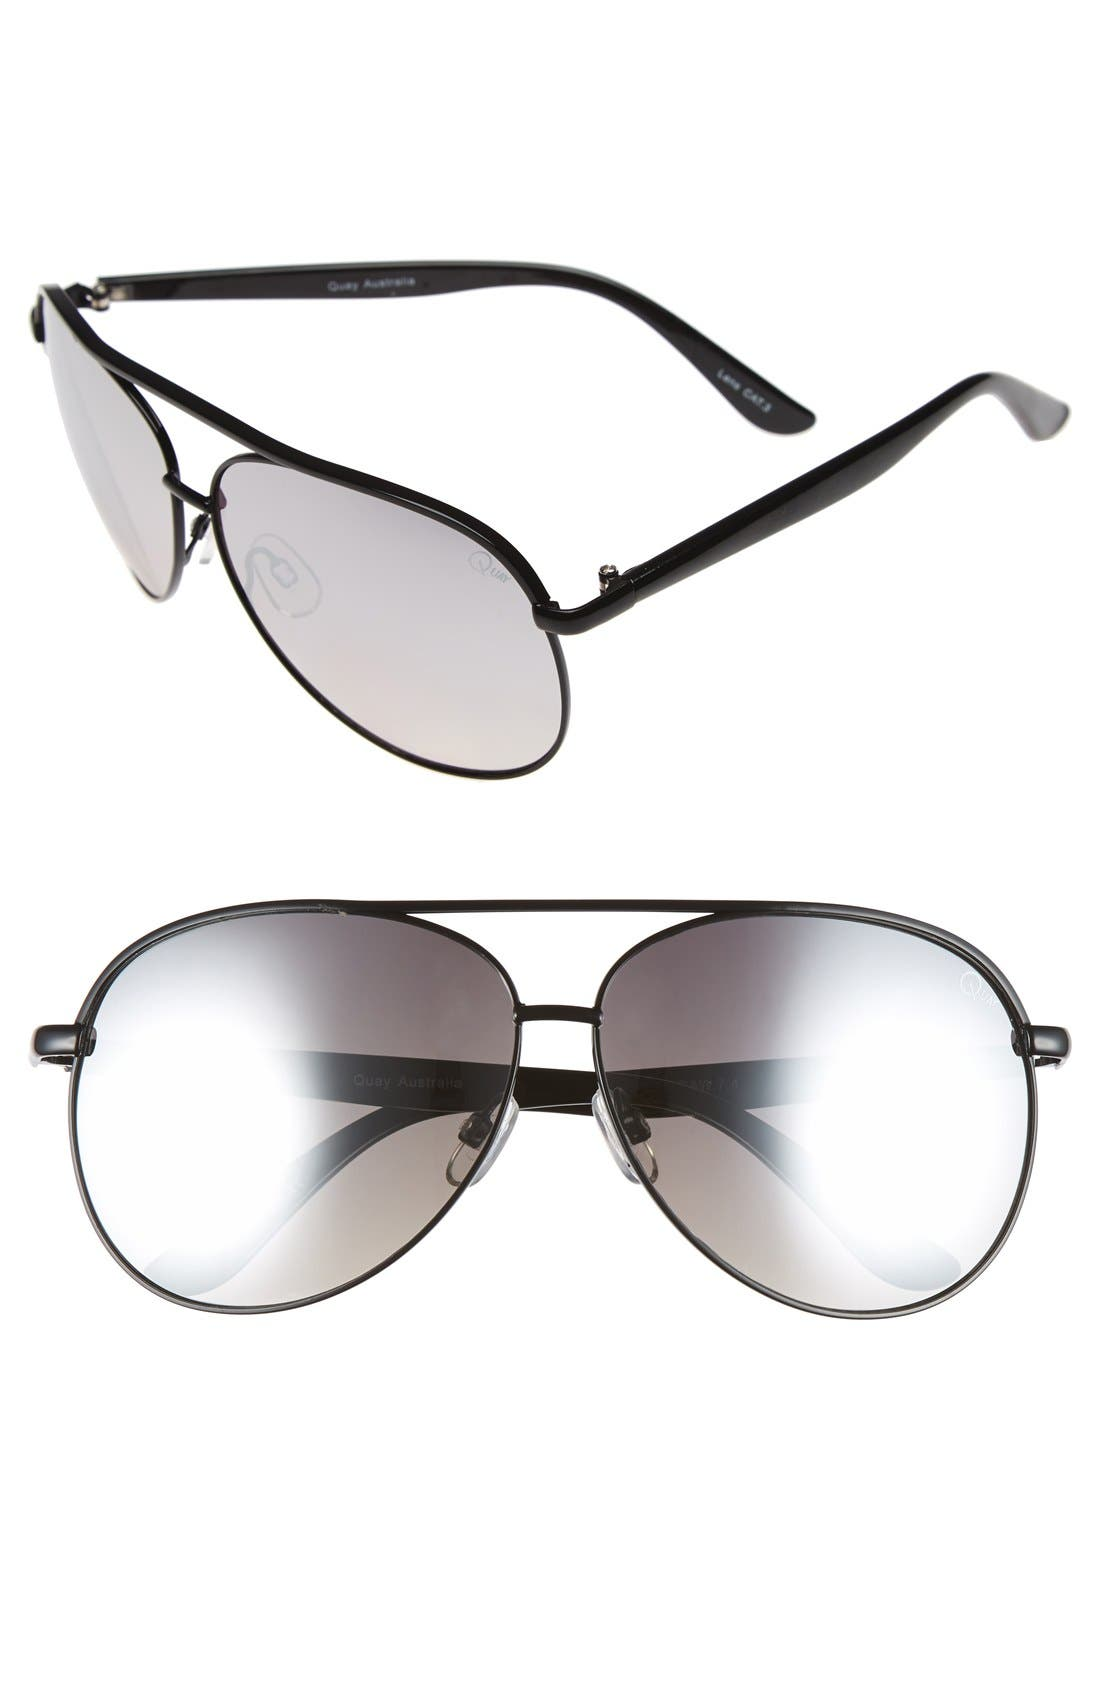 Quay Australia 'Macaw' 65mm Aviator Sunglasses